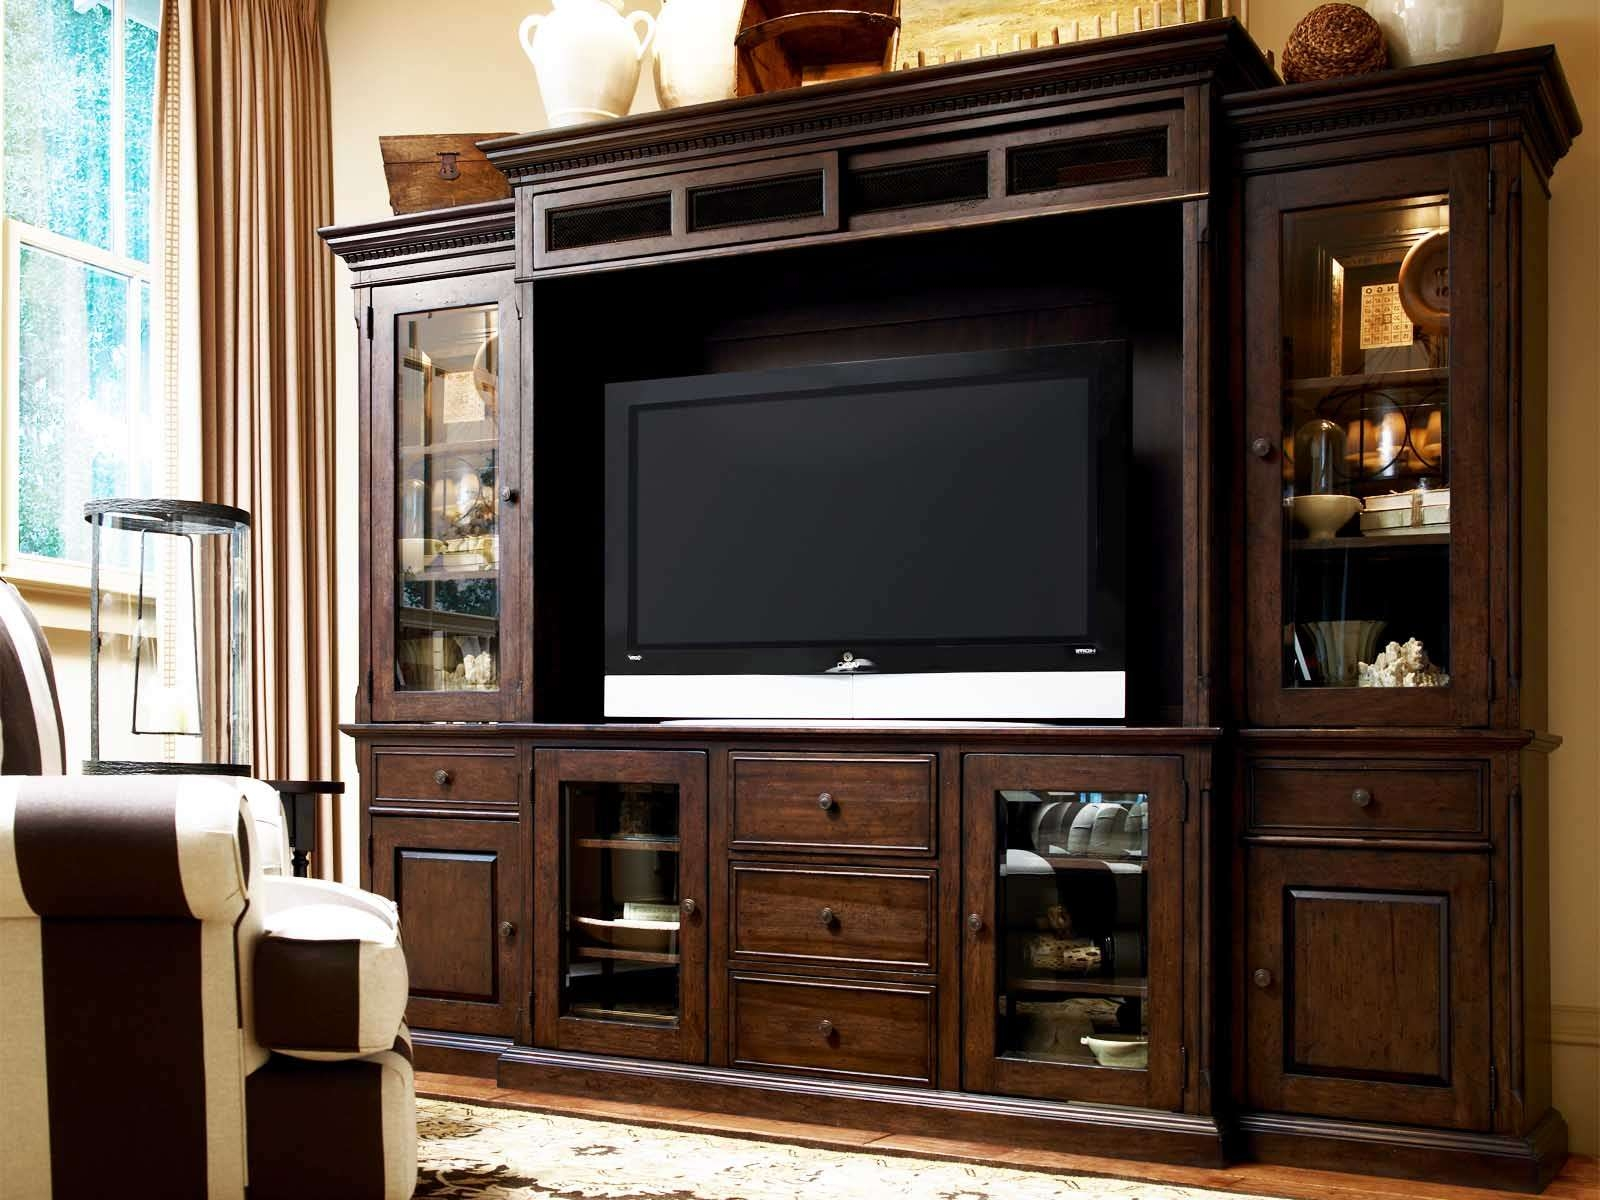 Tv Units With Glass Doors Image Collections – Doors Design Ideas Inside Tv Cabinets With Storage (View 19 of 20)